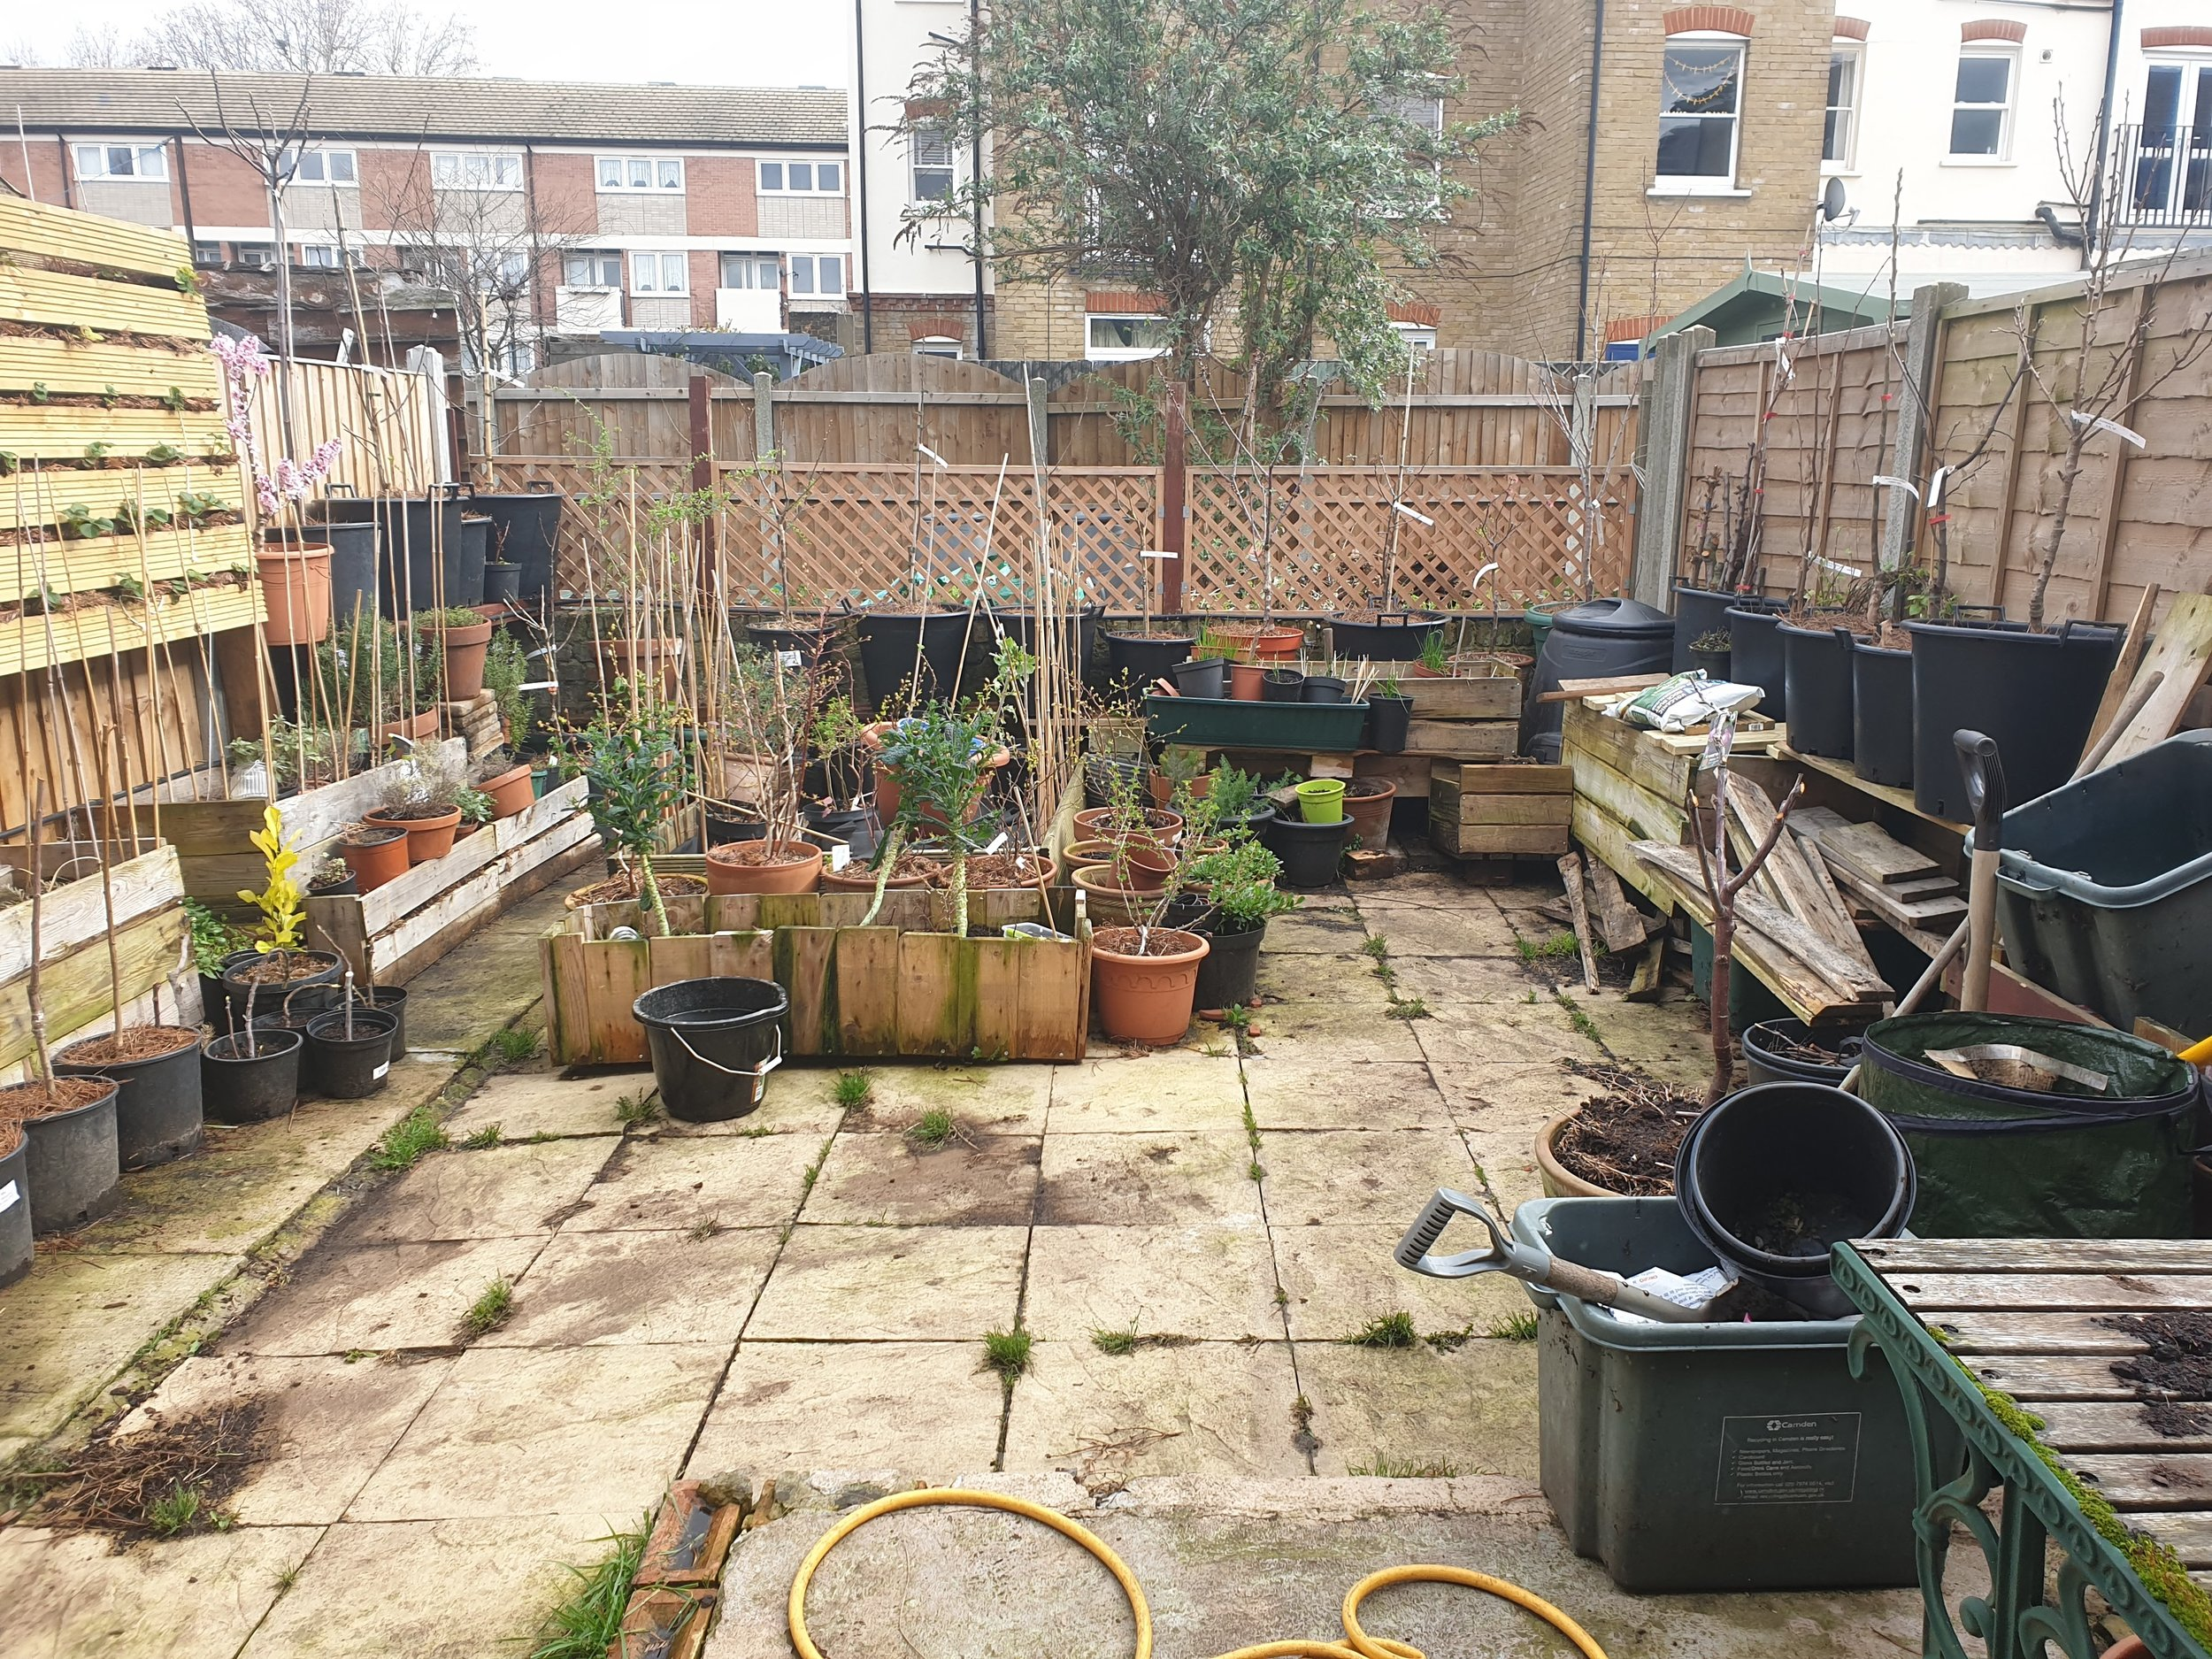 The 'urban orchard' site in our small London garden. The trees are in pots elevated on a small shelf at the back of the fence. This photo was taken in winter.